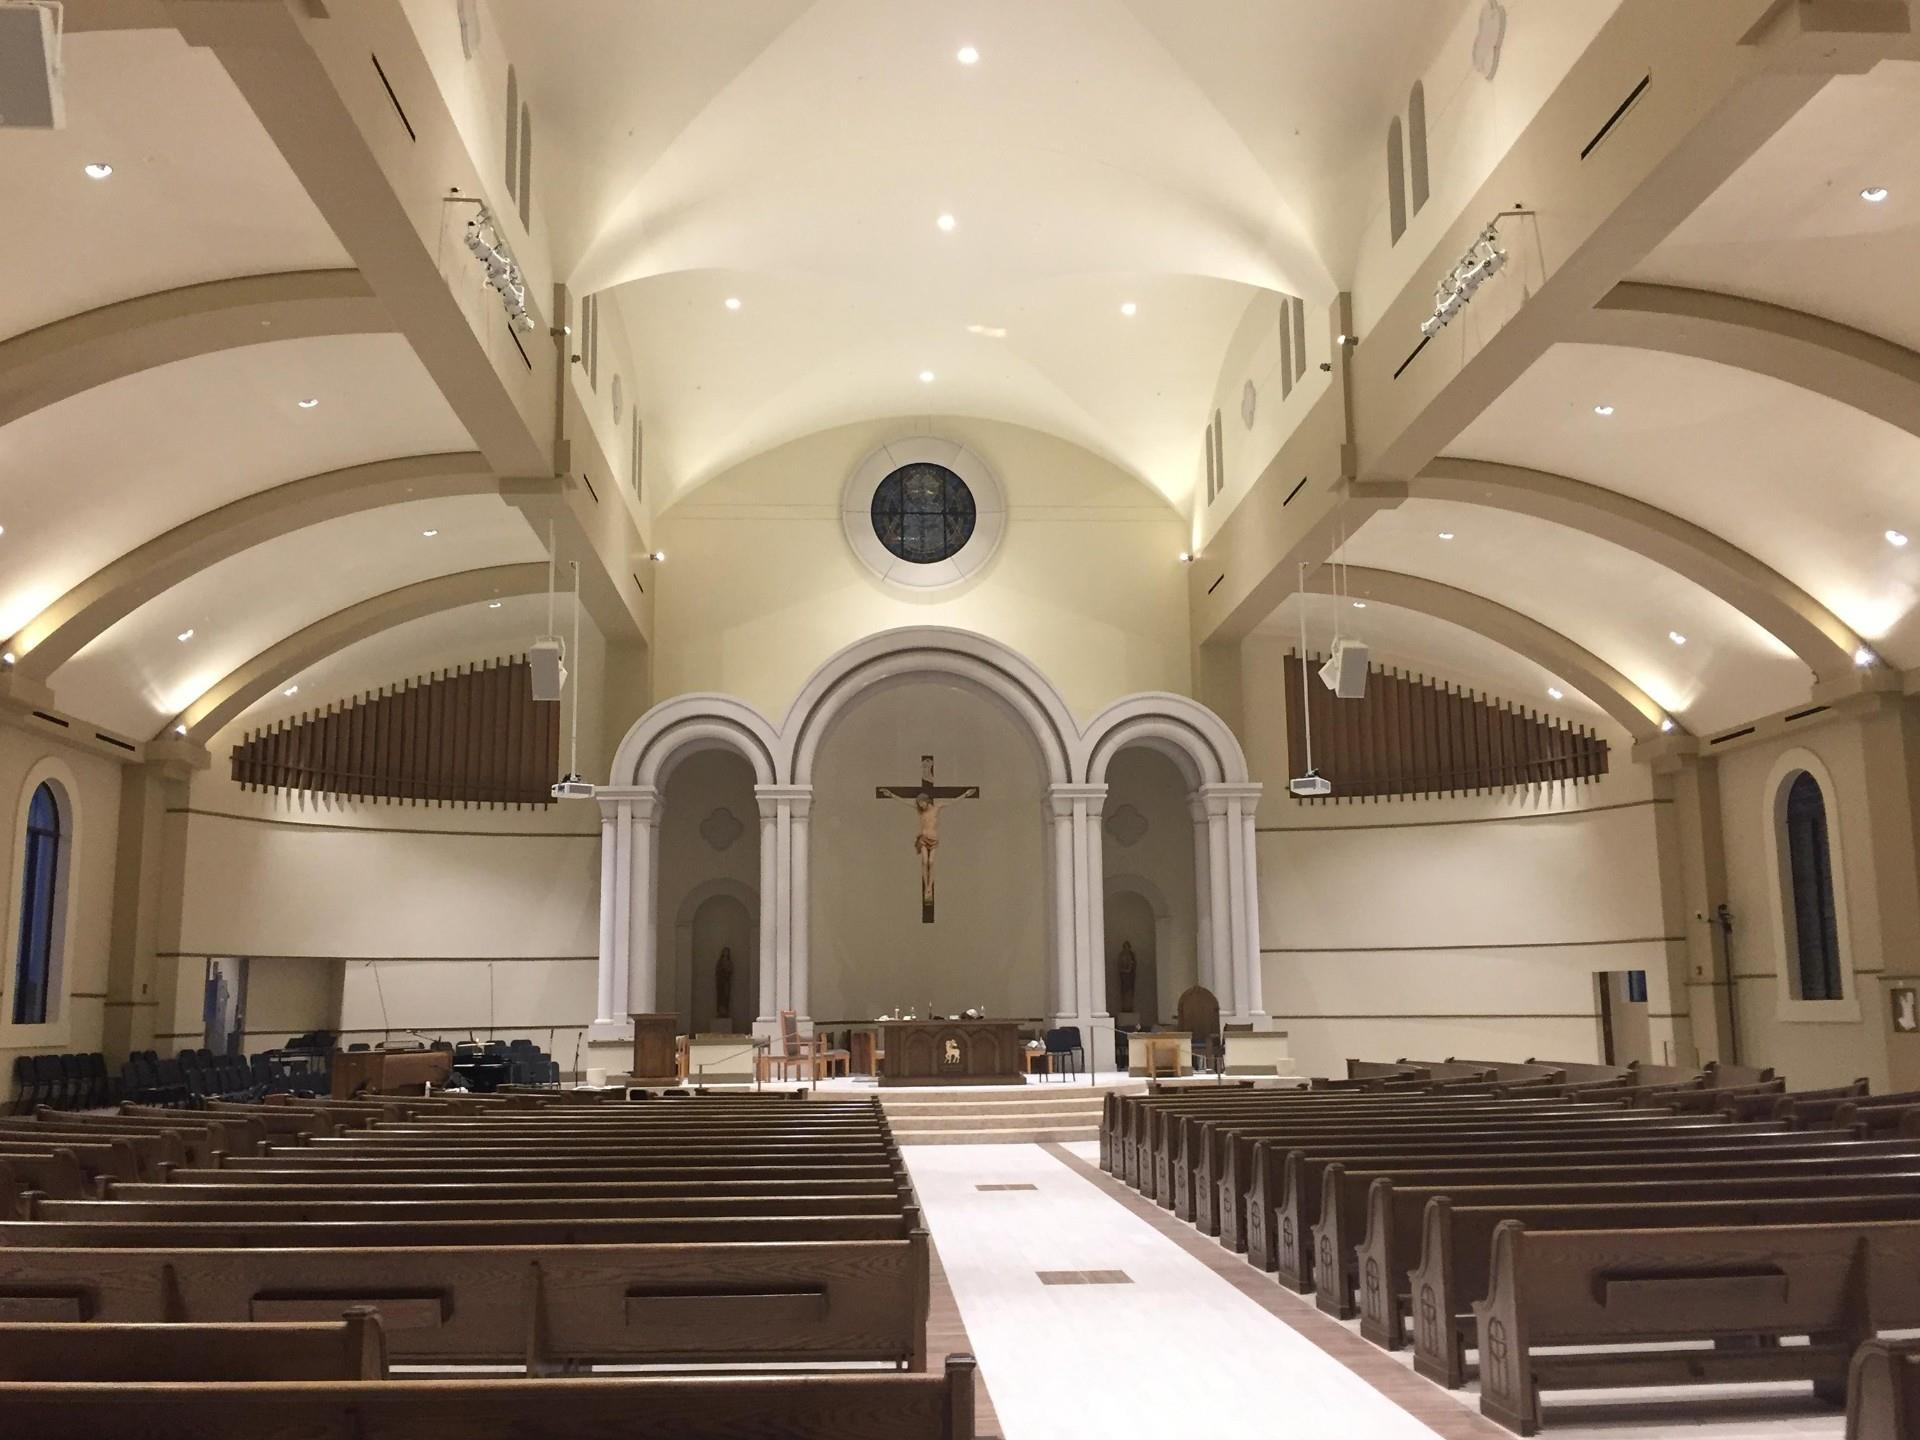 Inside view of church aisle pews empty brightly lit.